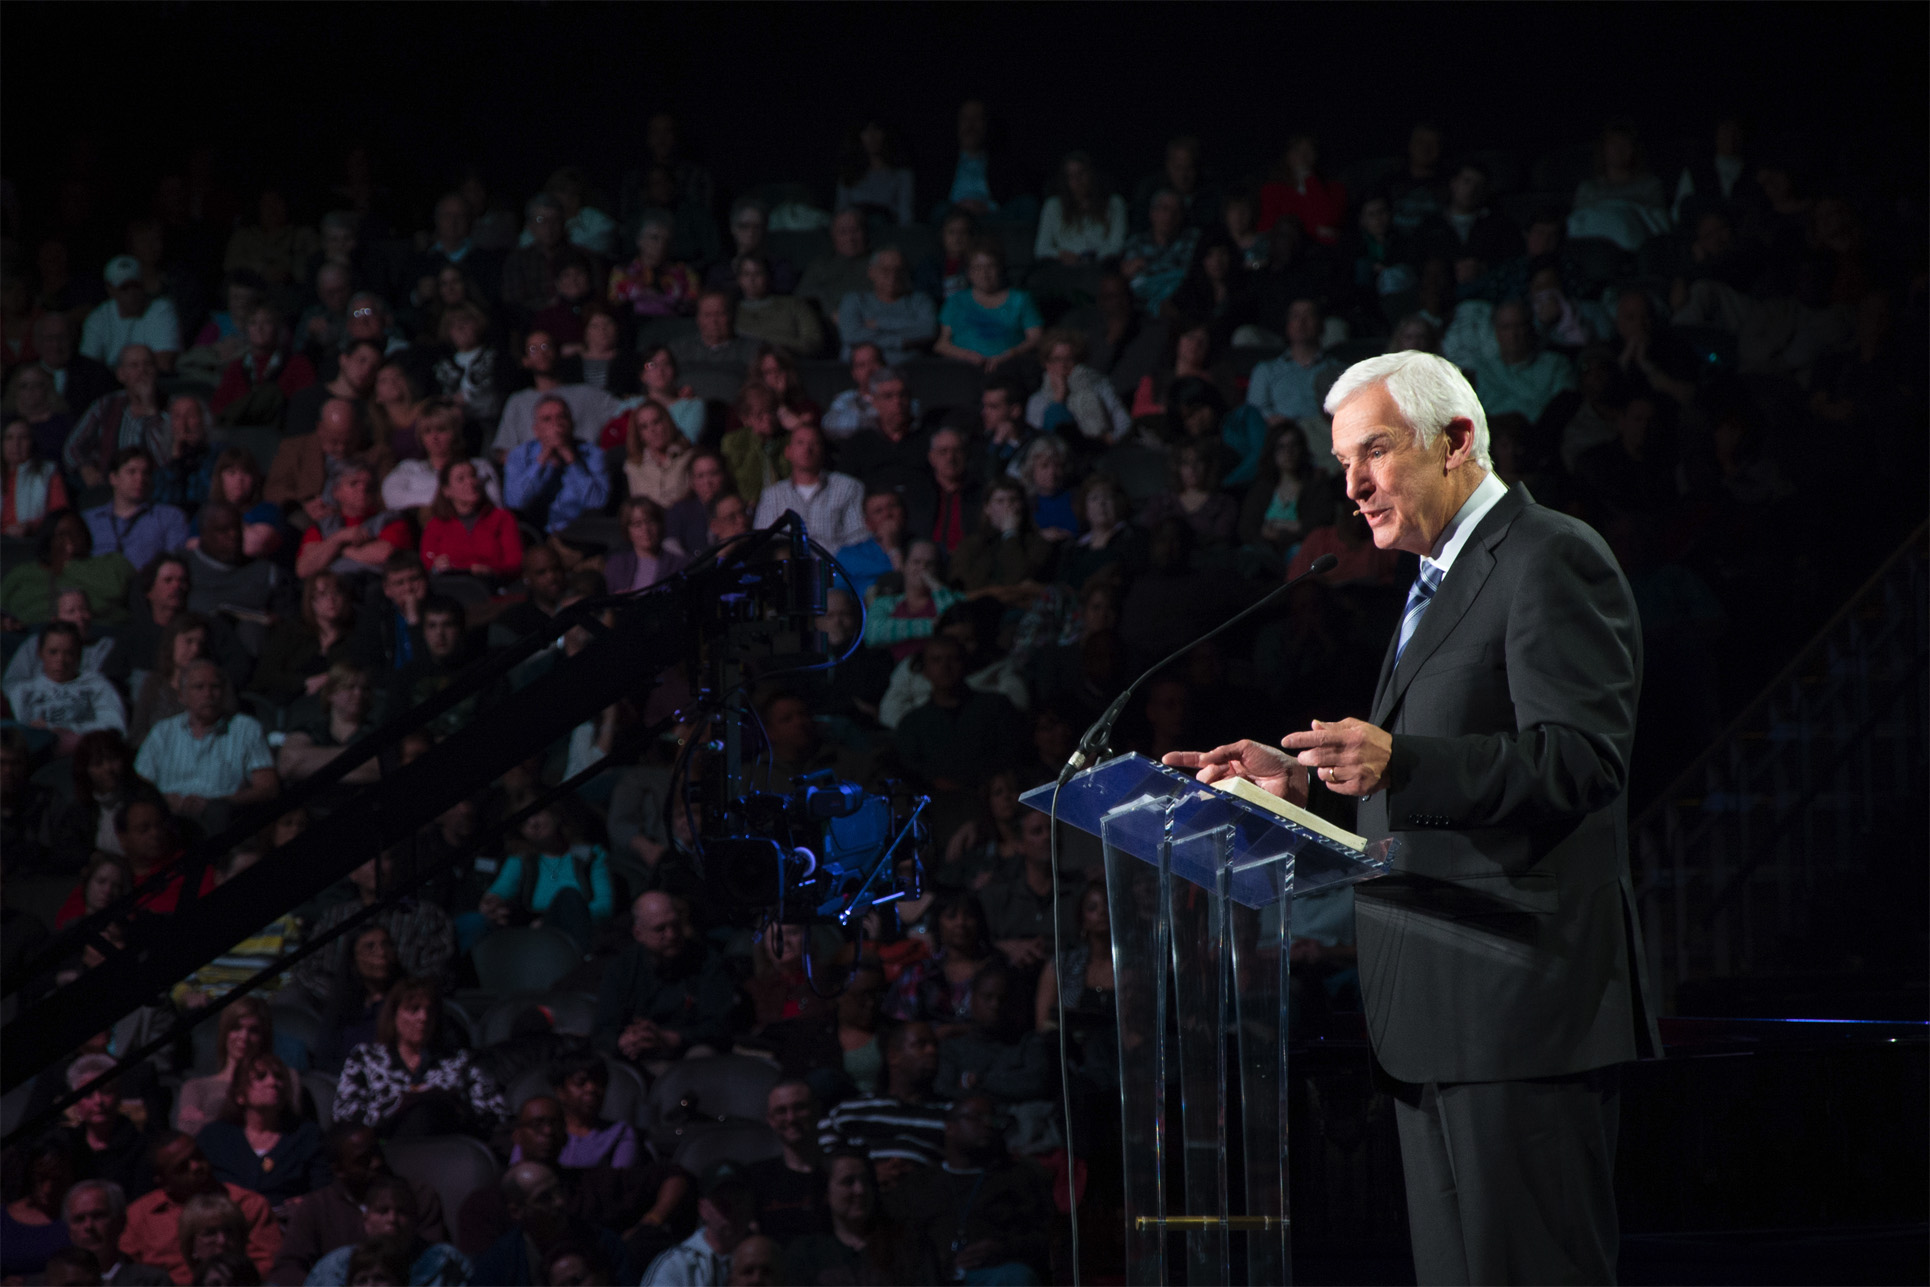 Dr. David Jeremiah preaching to audience of listeners on God's faithfulness through life's hardest battles